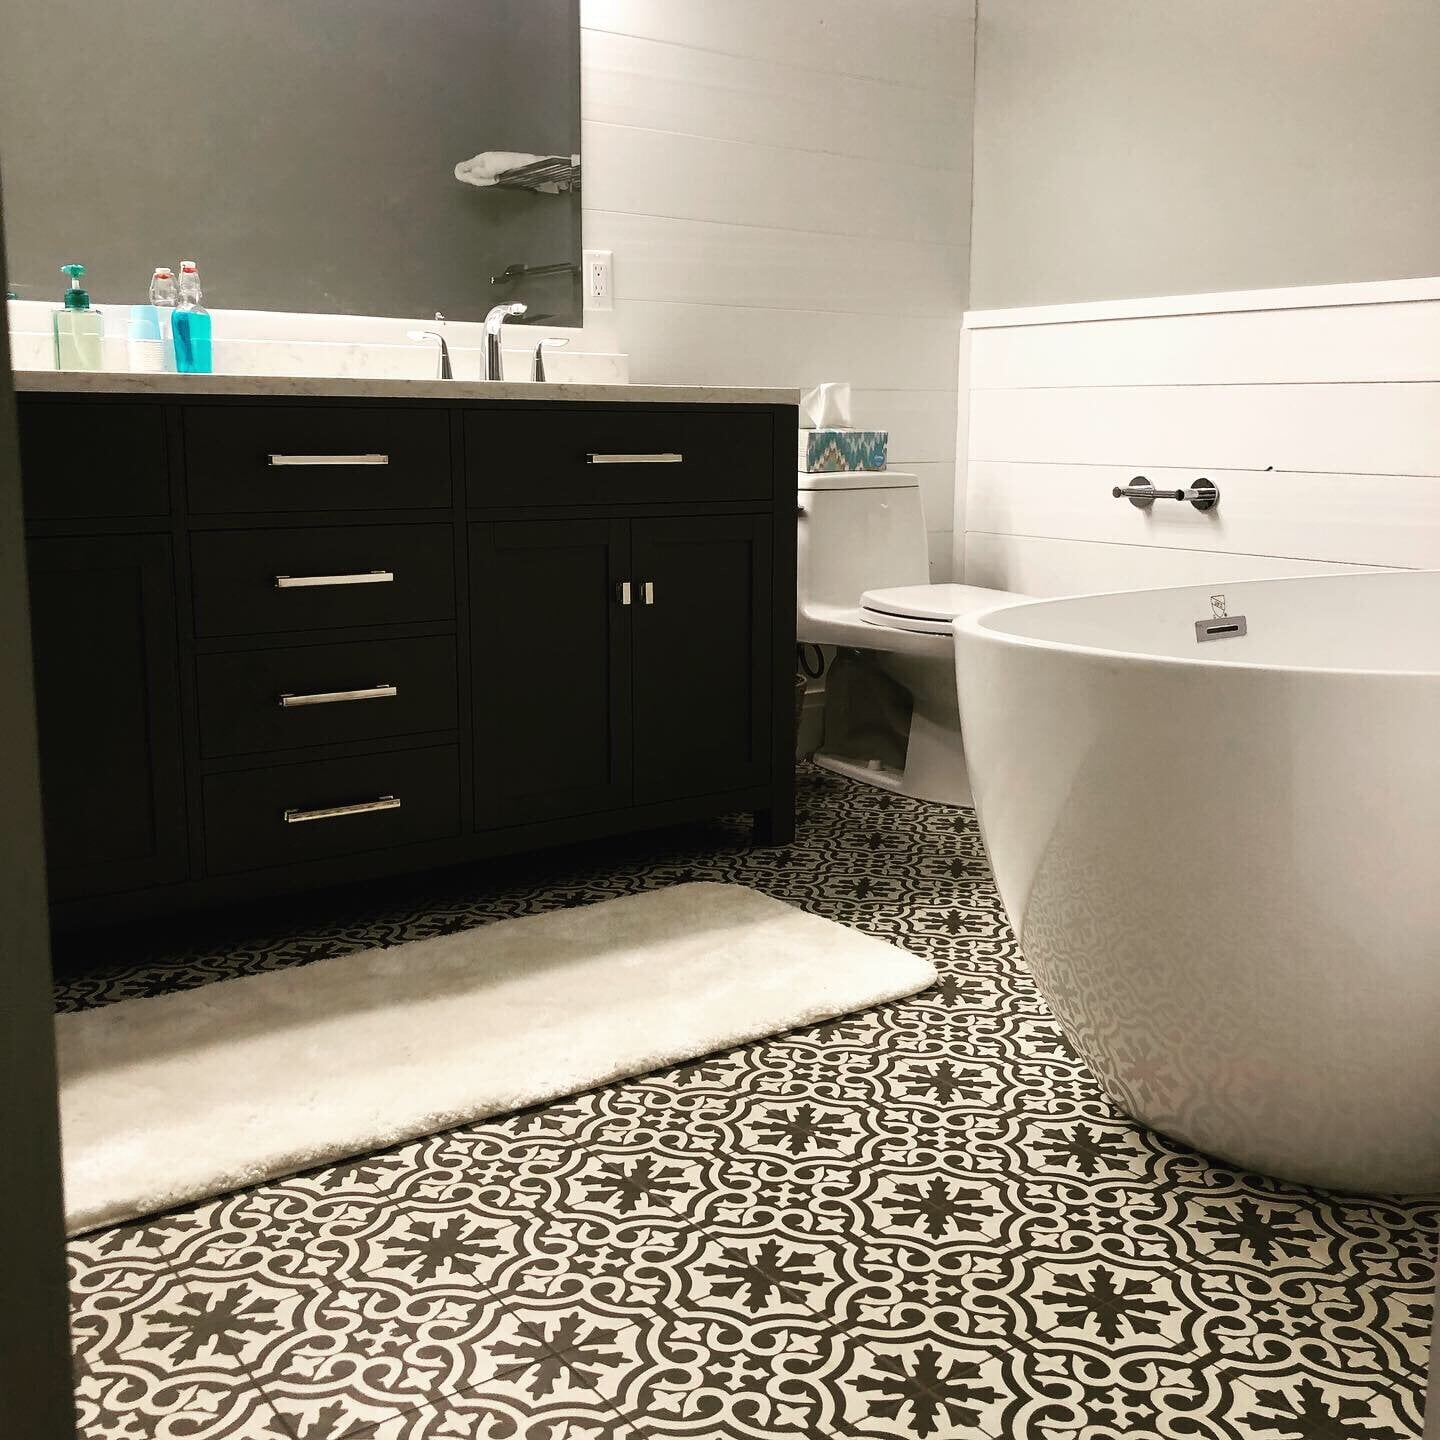 Bathroom remodel in Lancaster, PA from Freedom Flooring